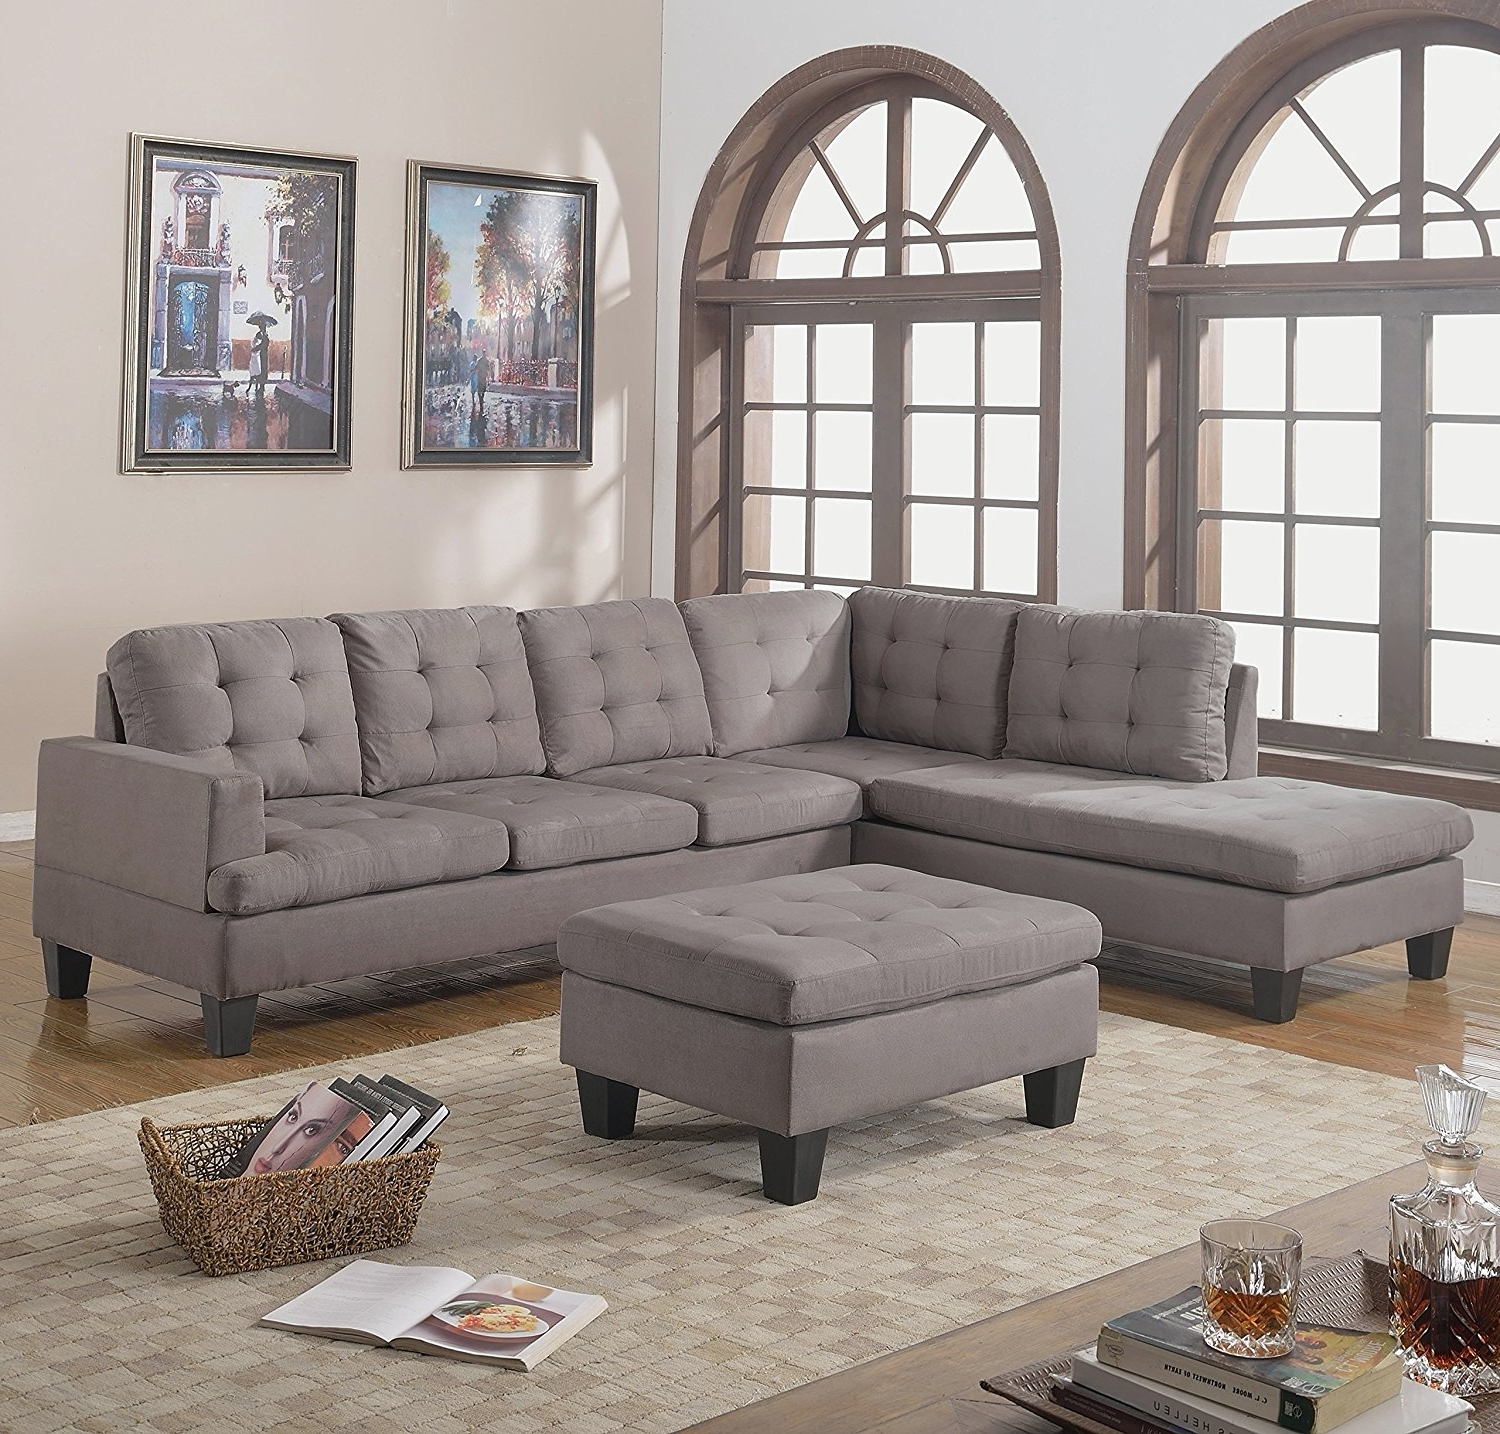 View Gallery of St Cloud Mn Sectional Sofas (Showing 8 of 20 ...